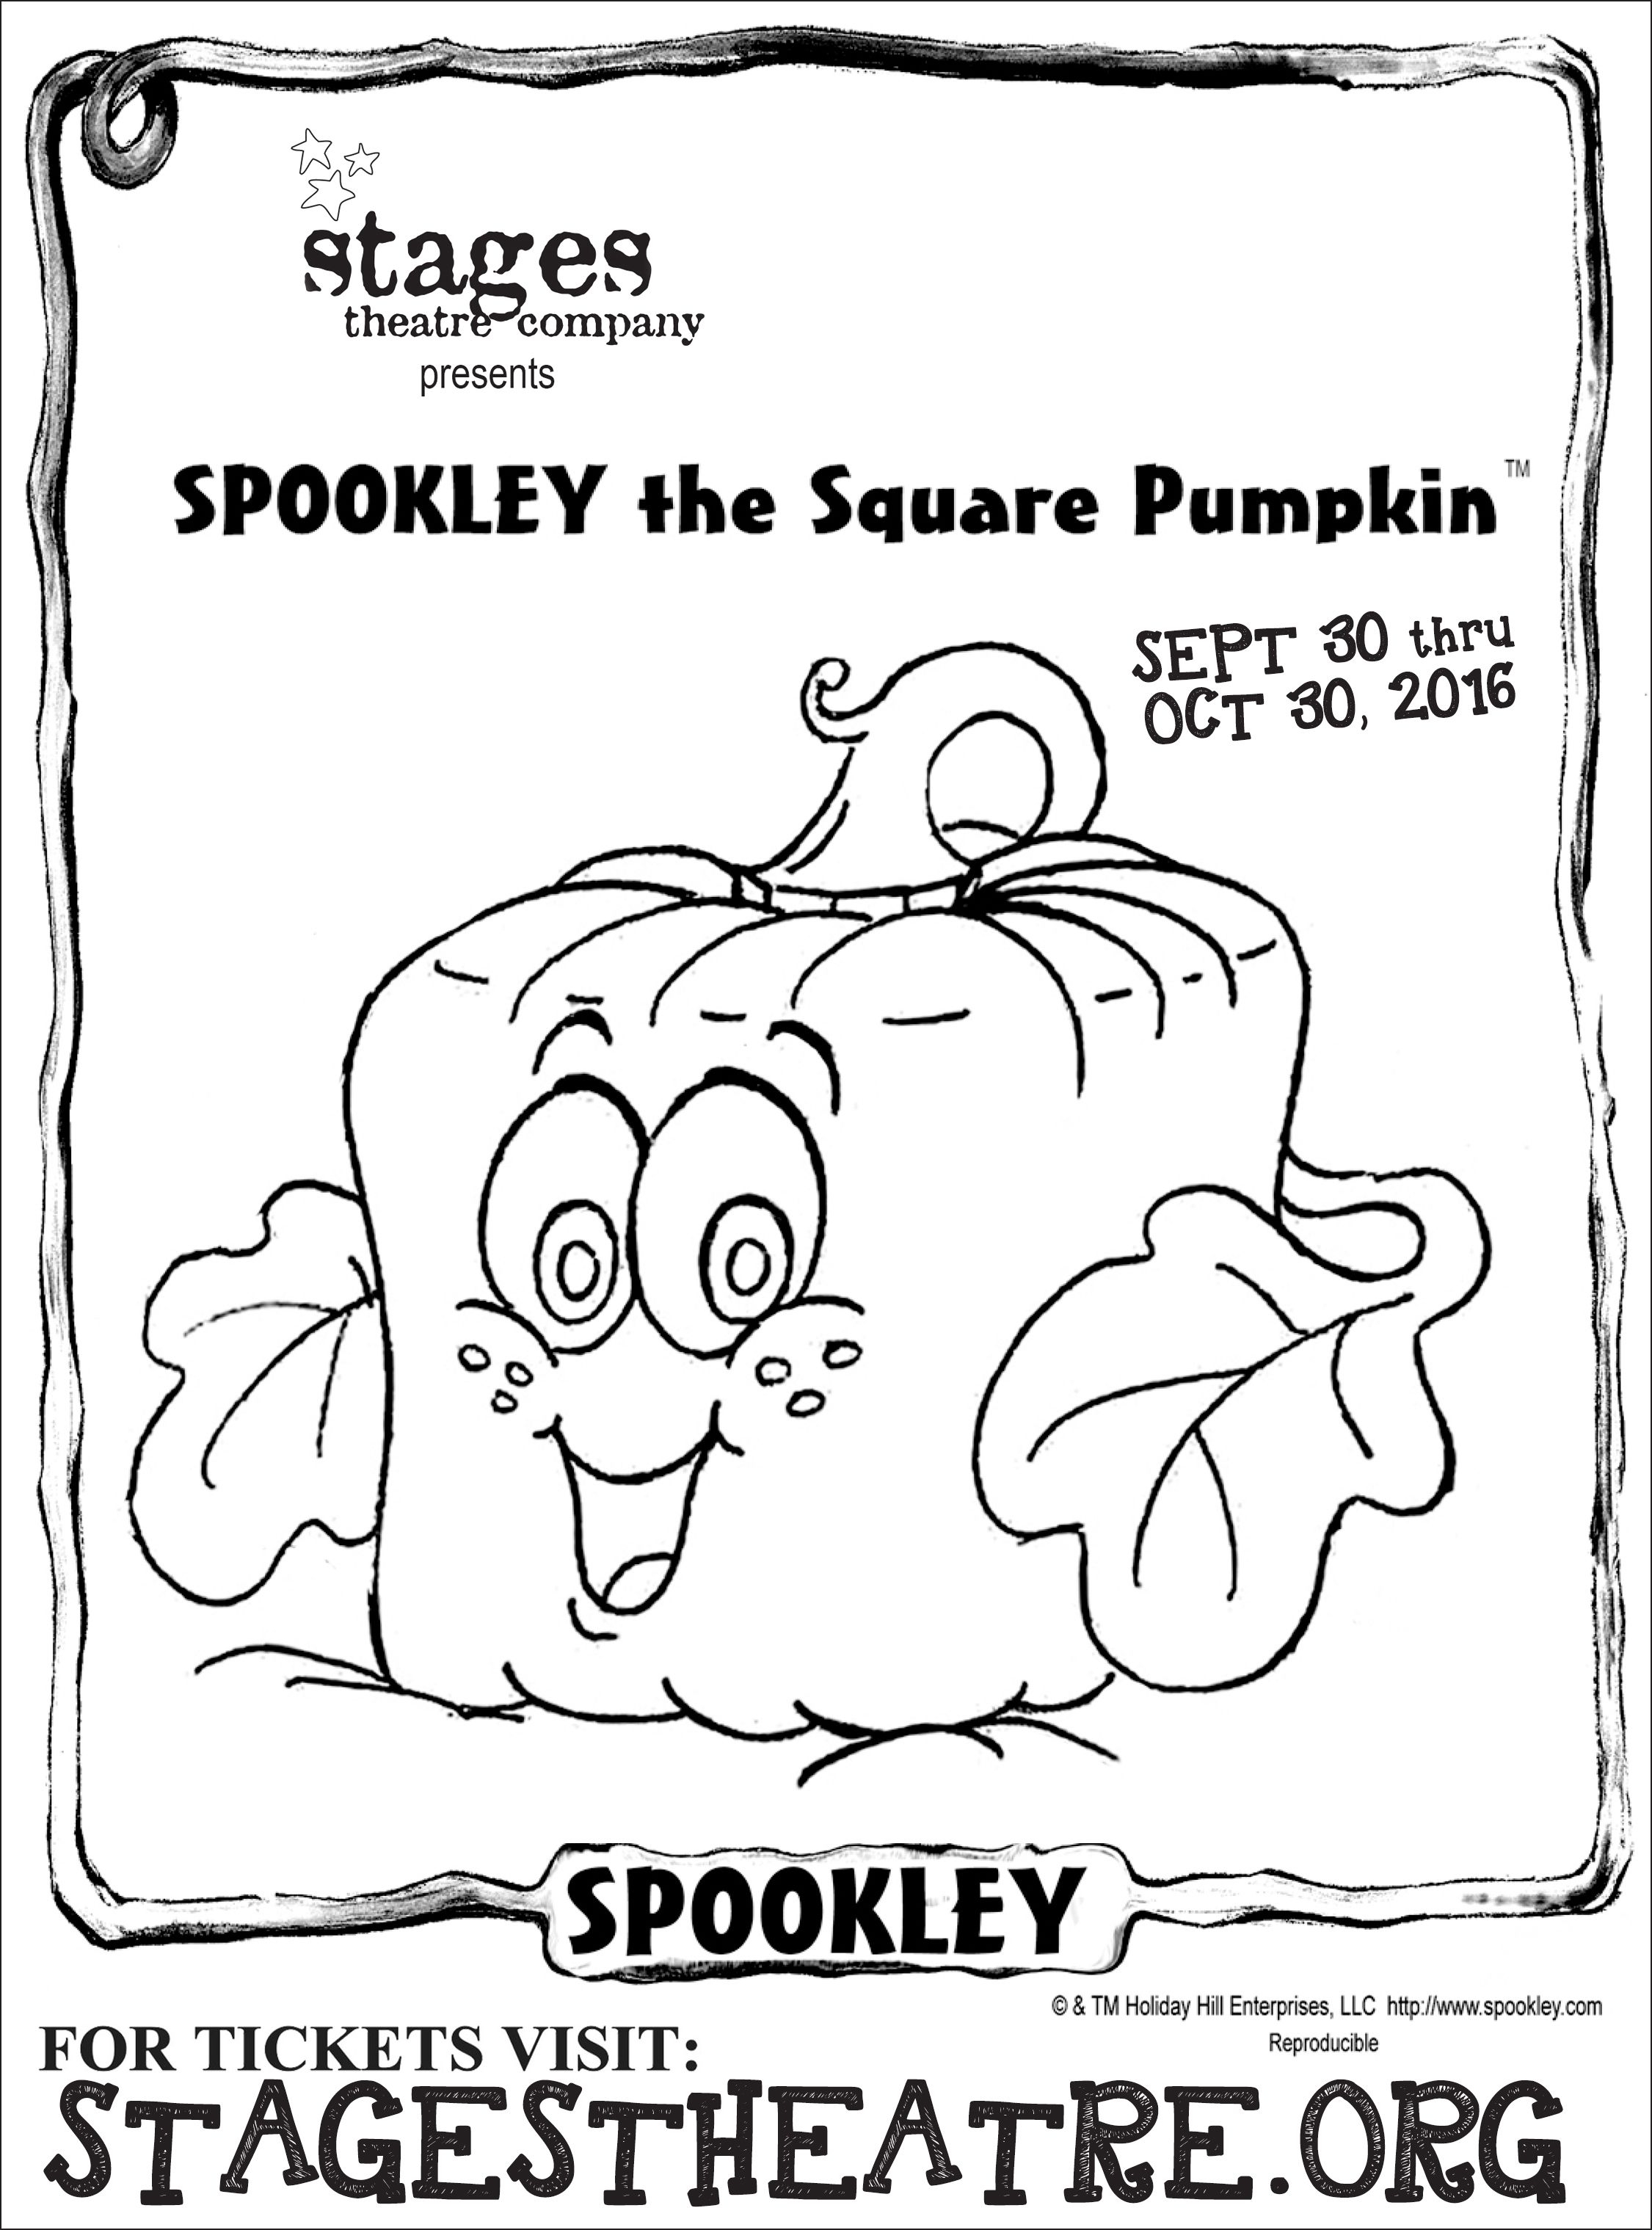 Spookley the Square Pumpkin Coloring Pages - Coloring Sheet for Spookley the Square Pumpkin